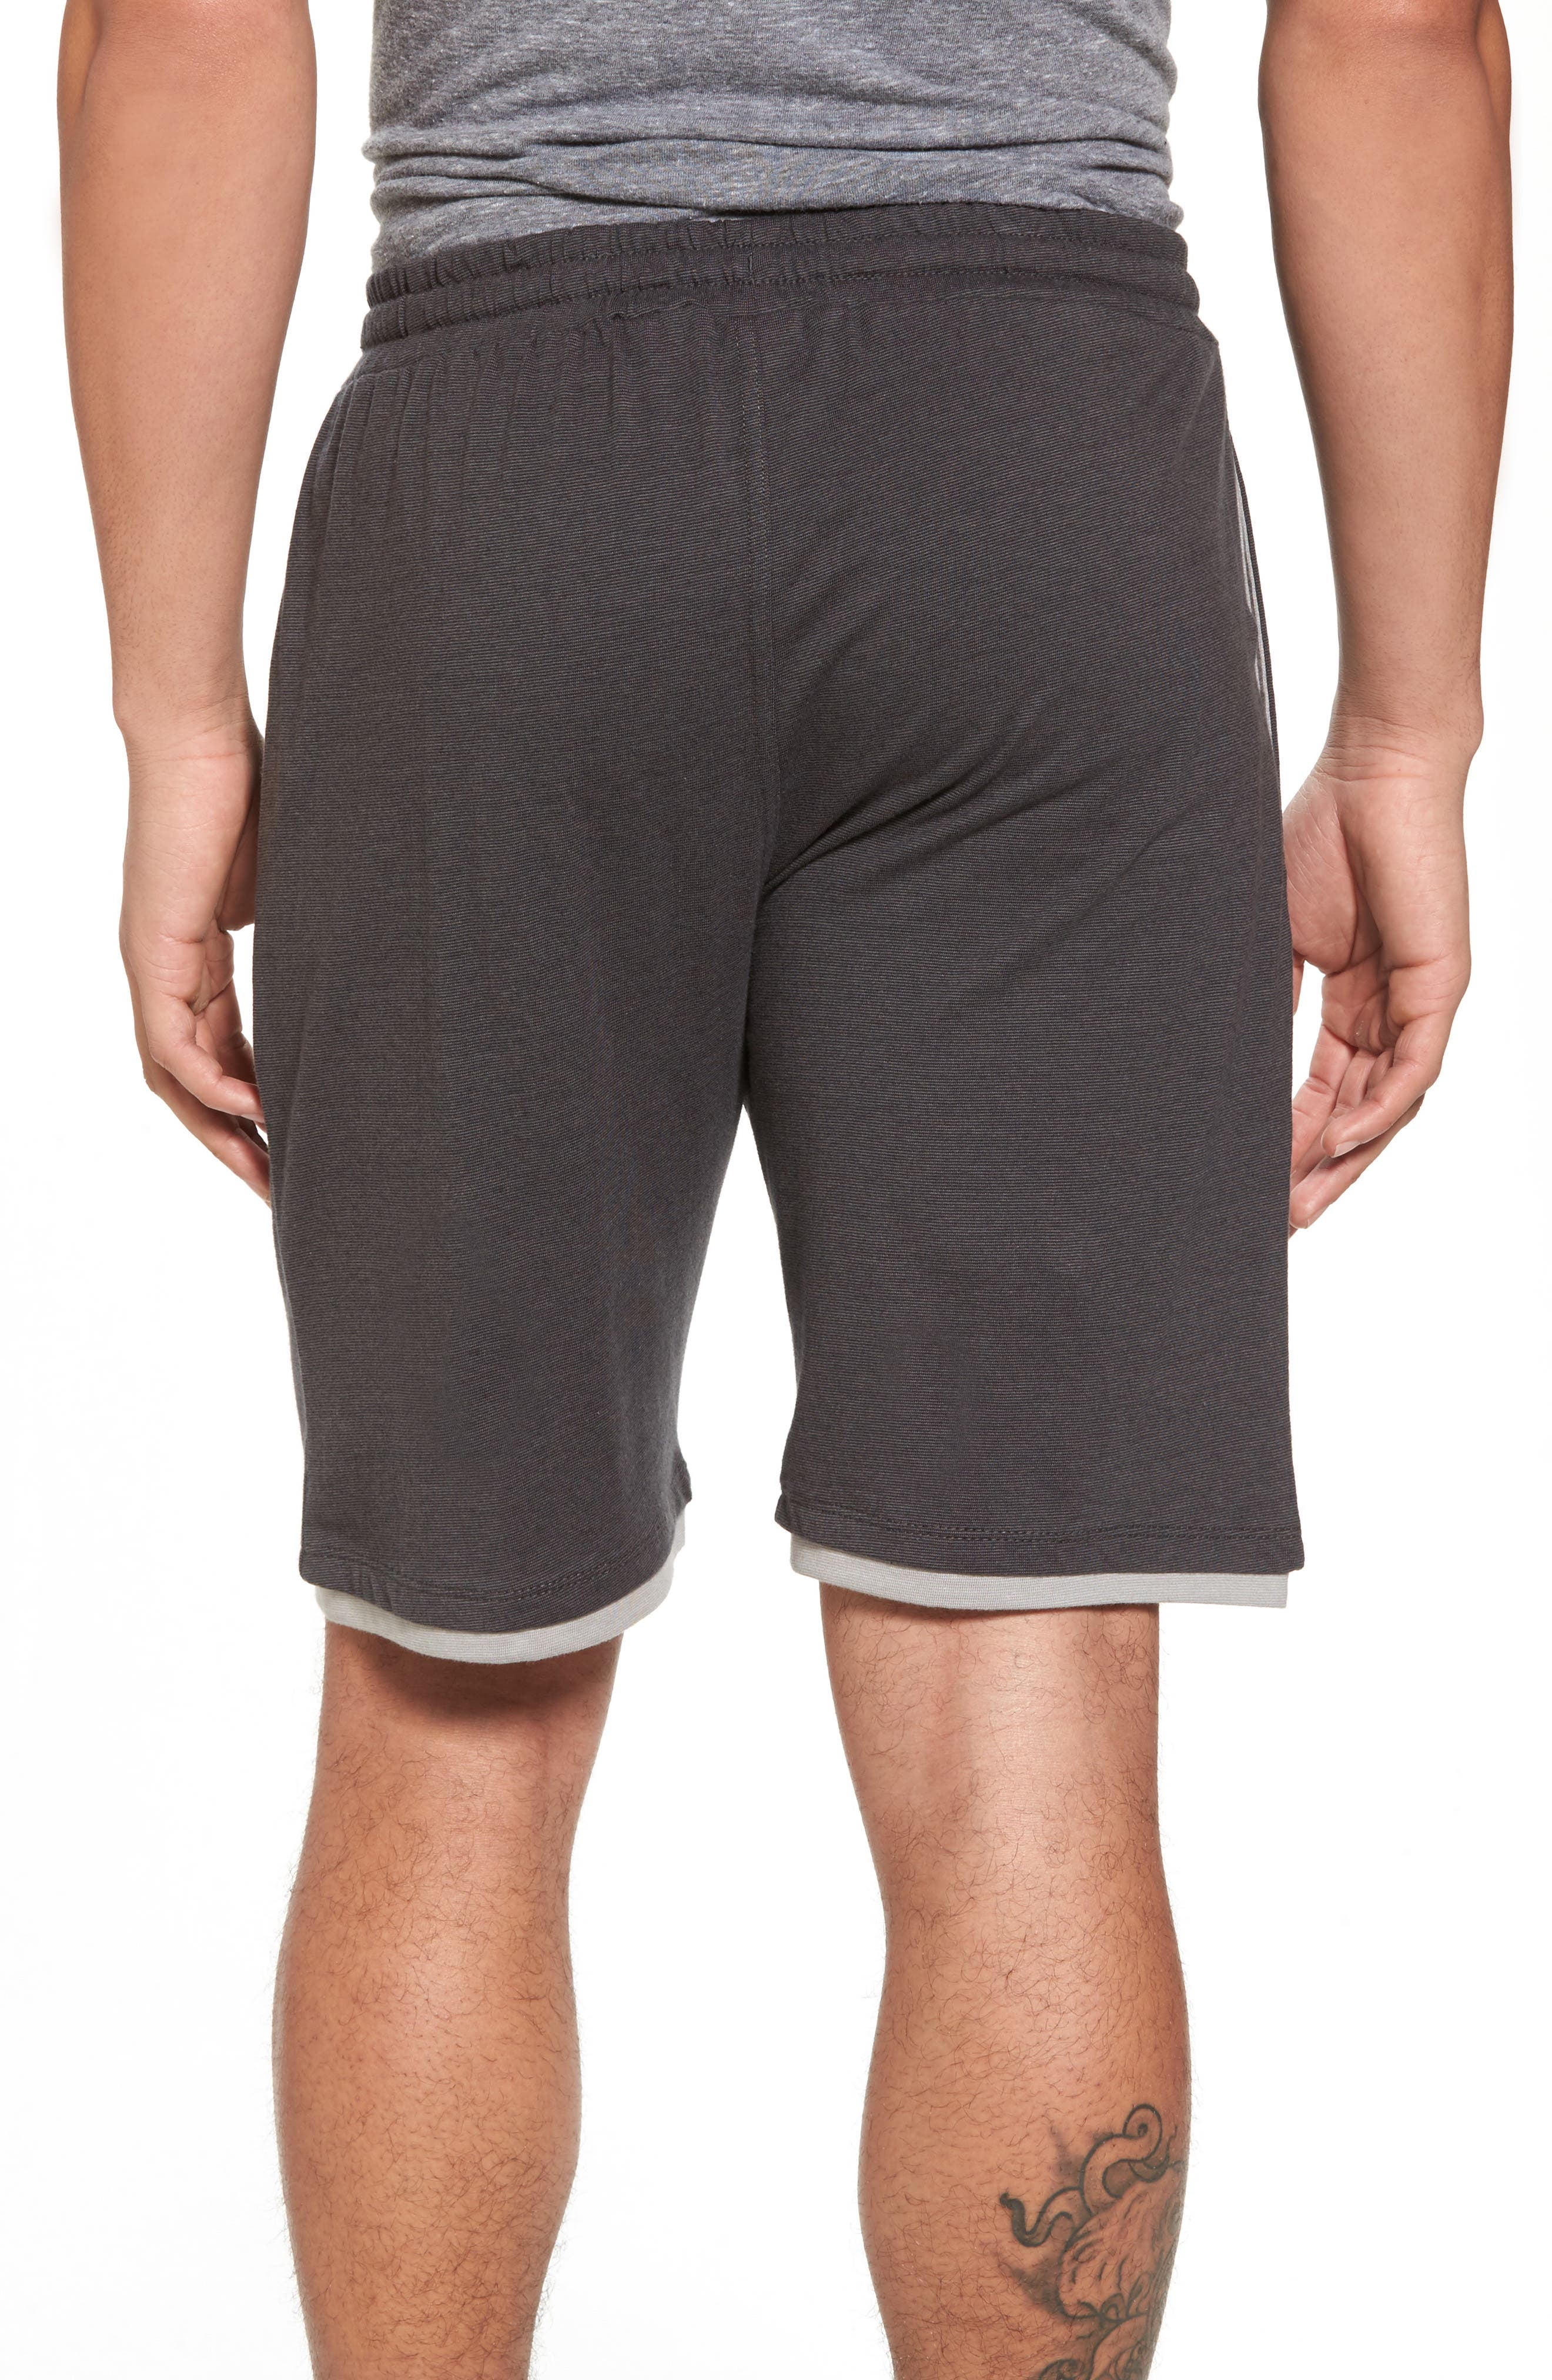 Layers Sport Shorts,                             Alternate thumbnail 2, color,                             001